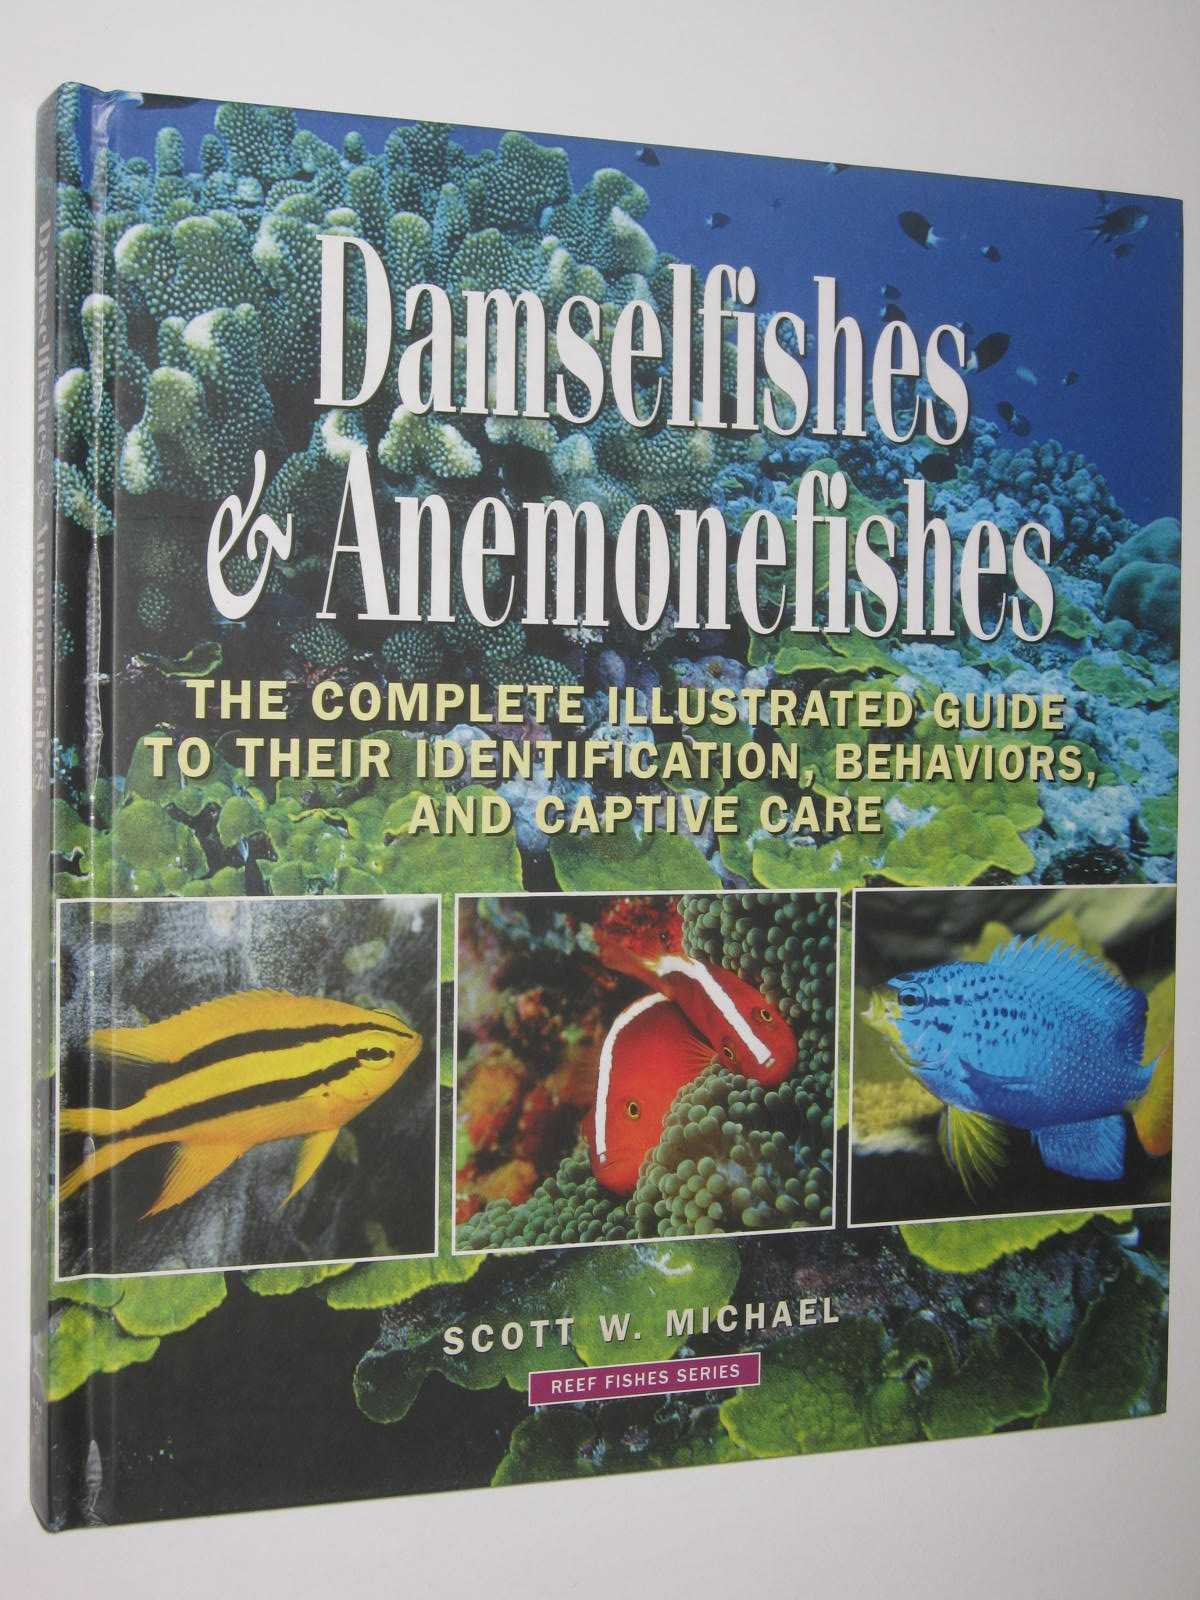 Image for Damselfishes and Anemonefishes - Reef Fishes Series #4